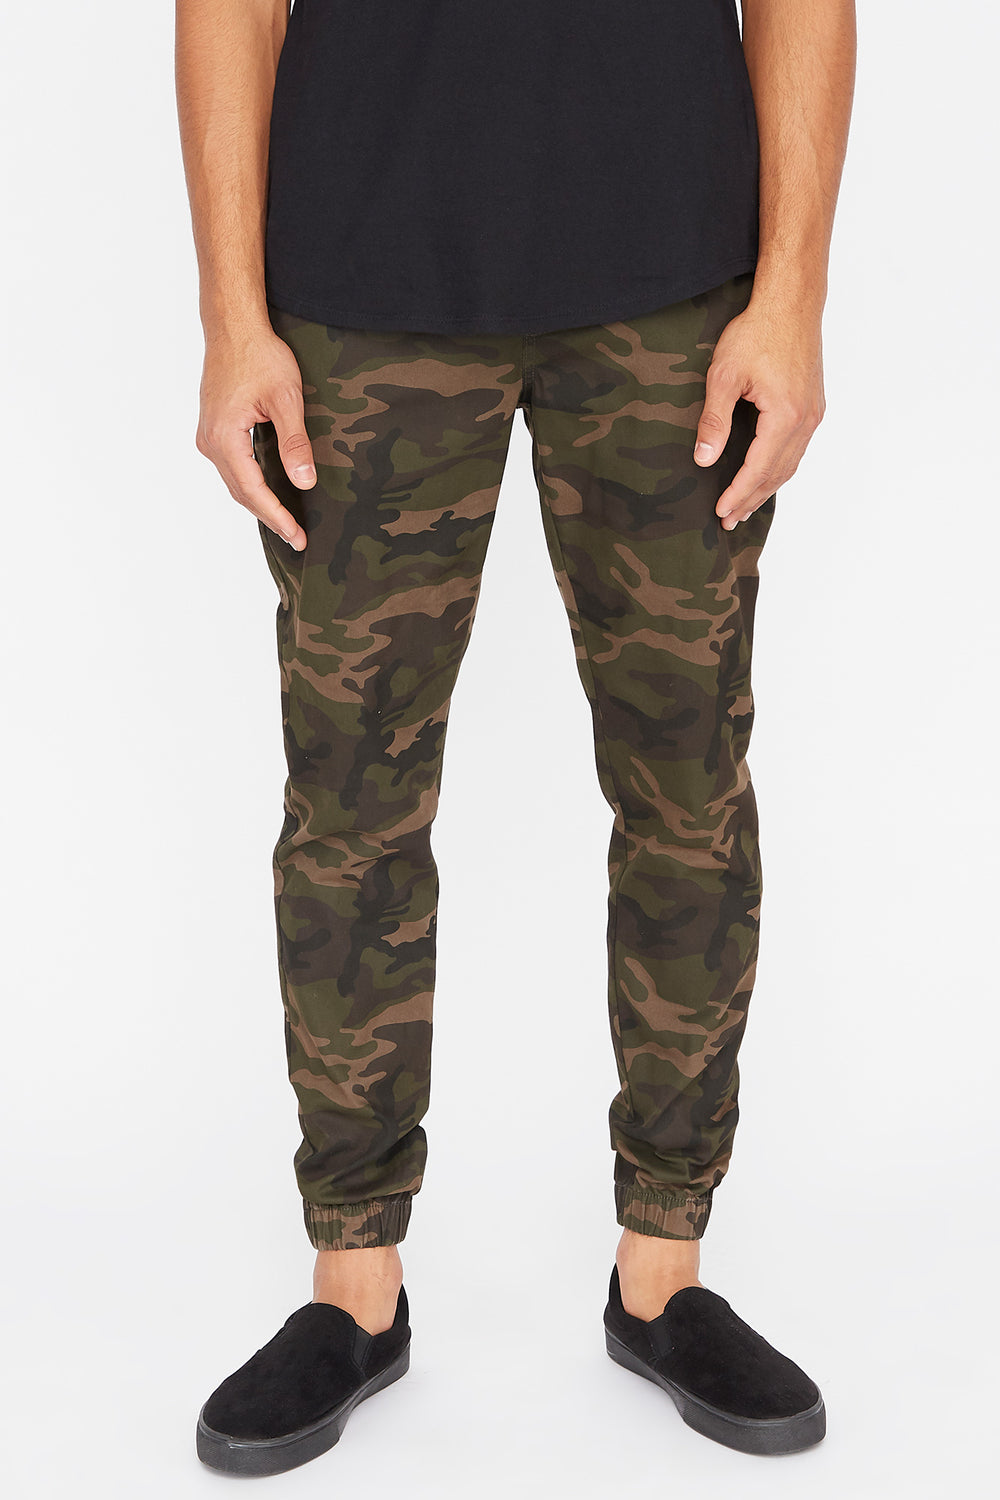 Jogger Camo West49 Homme Camoufle